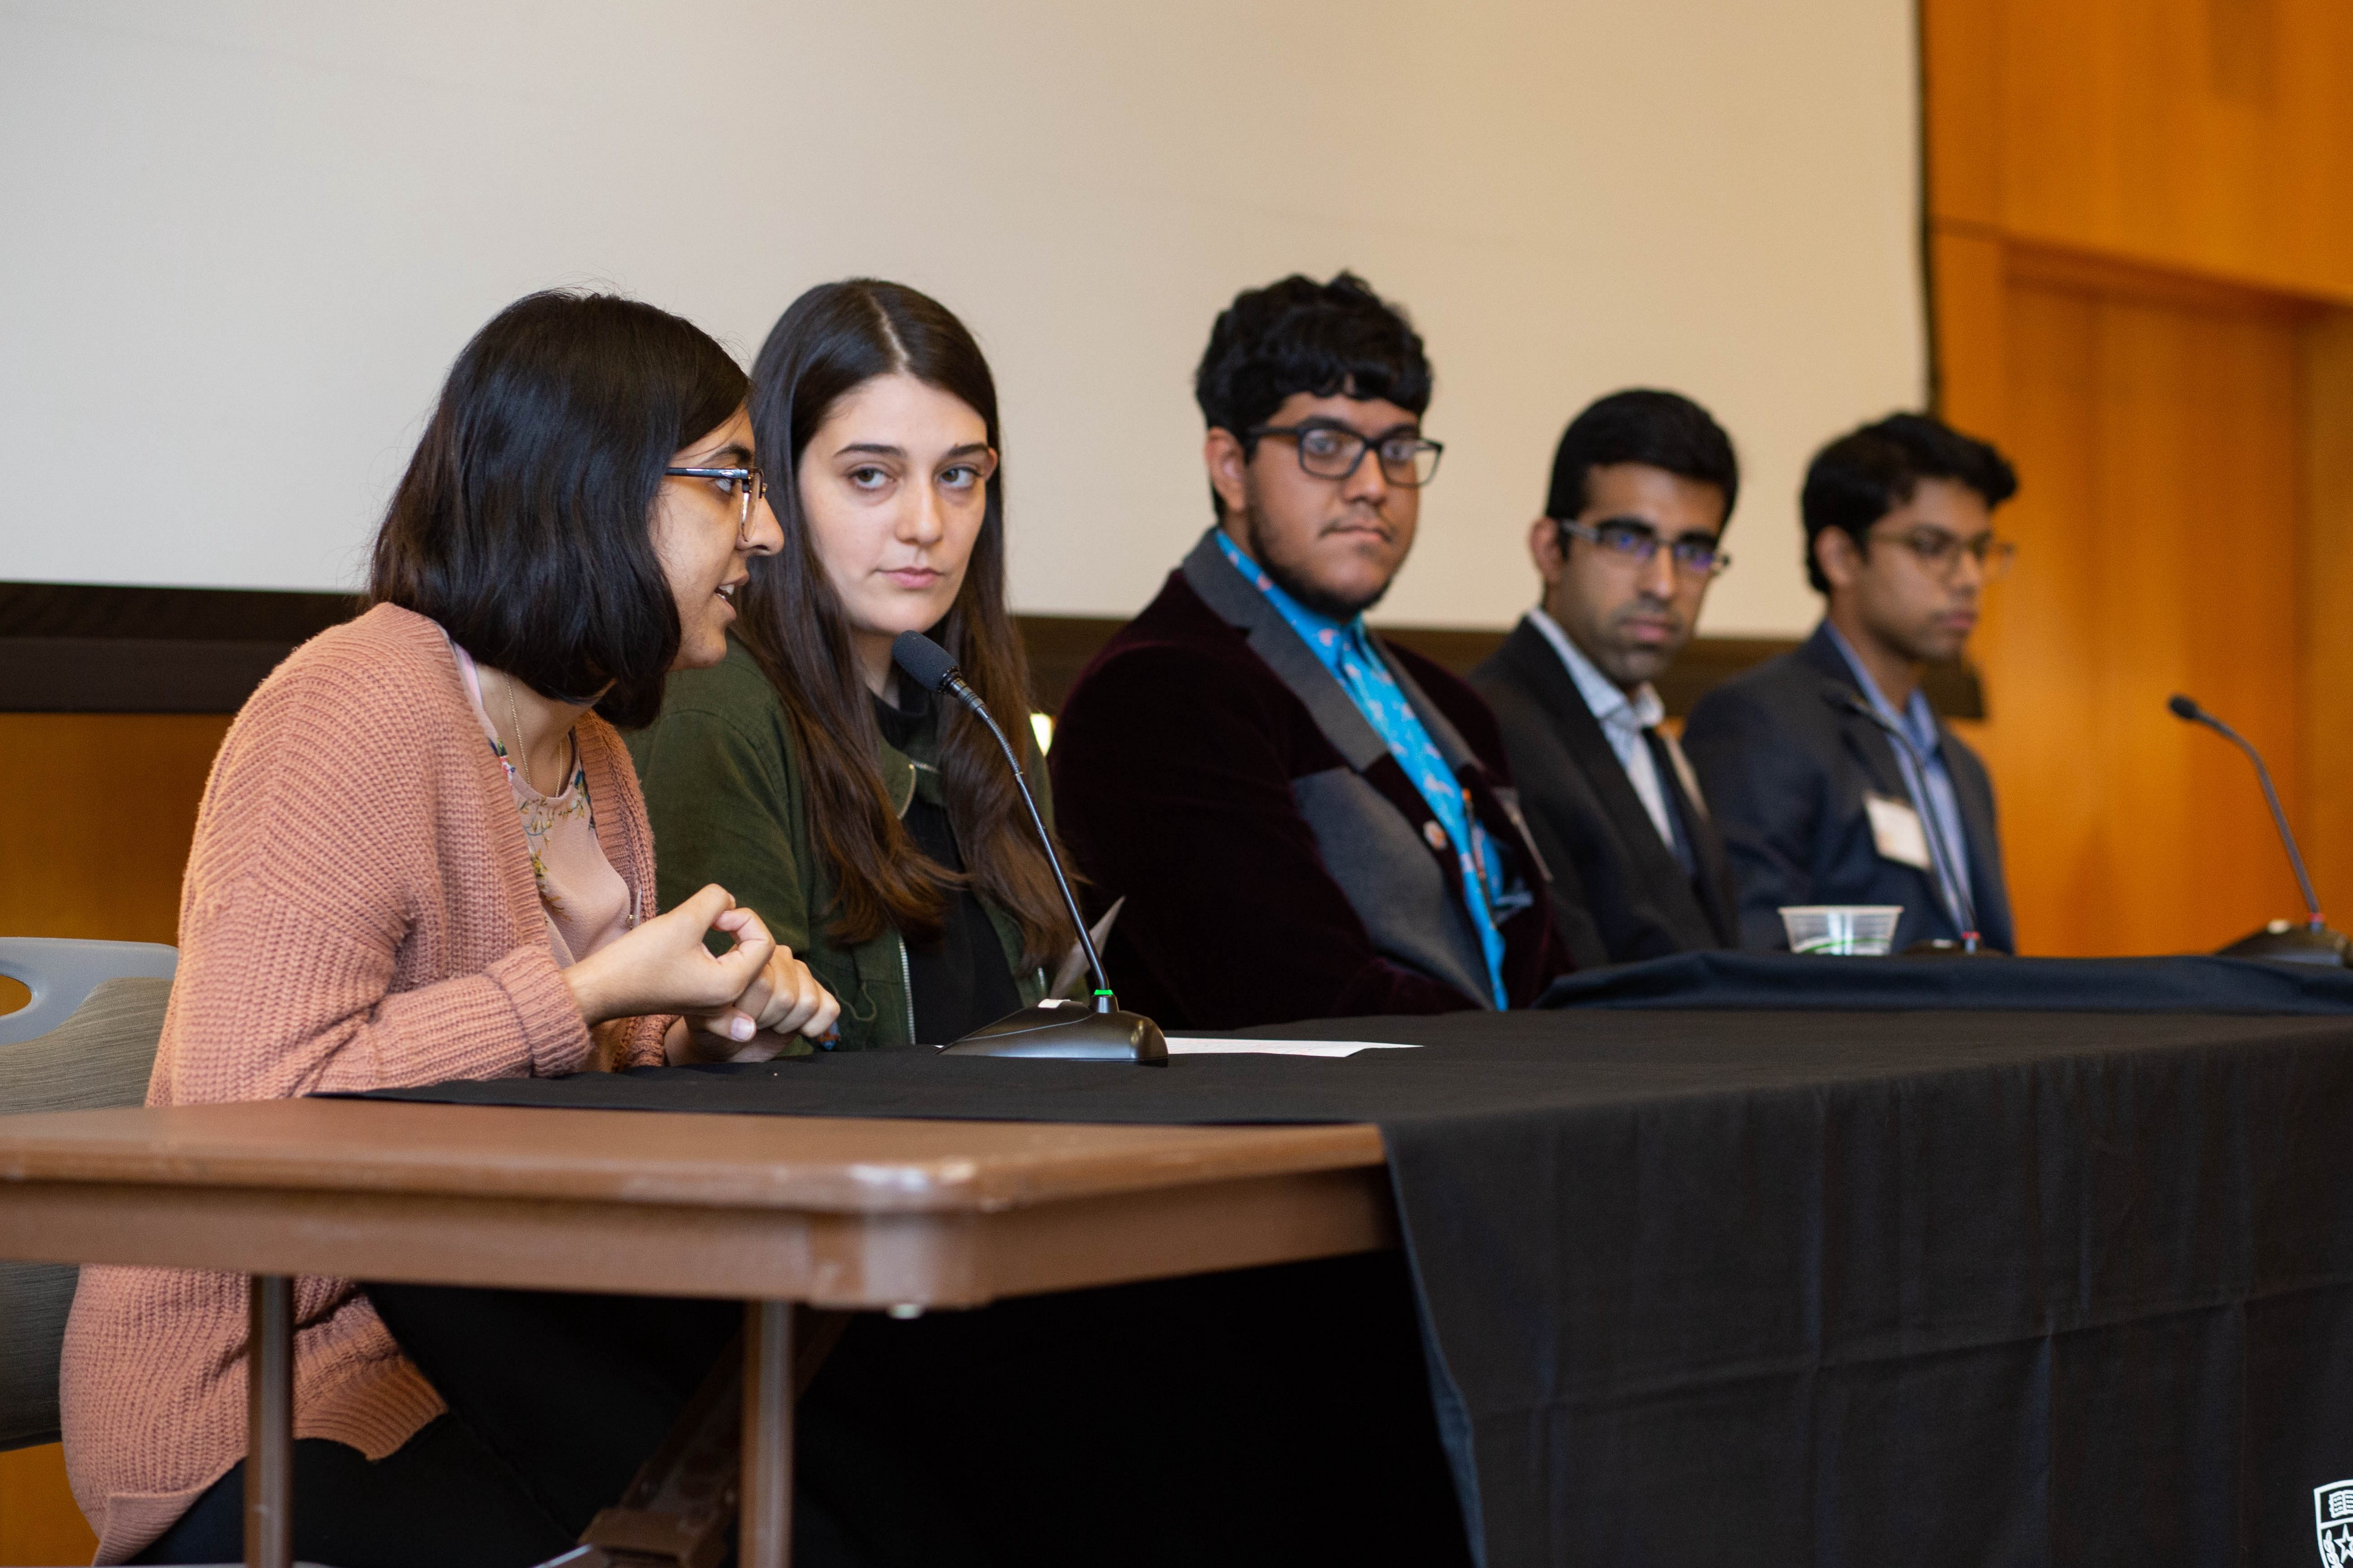 Five students sit in front of microphones at a table in a conference room.